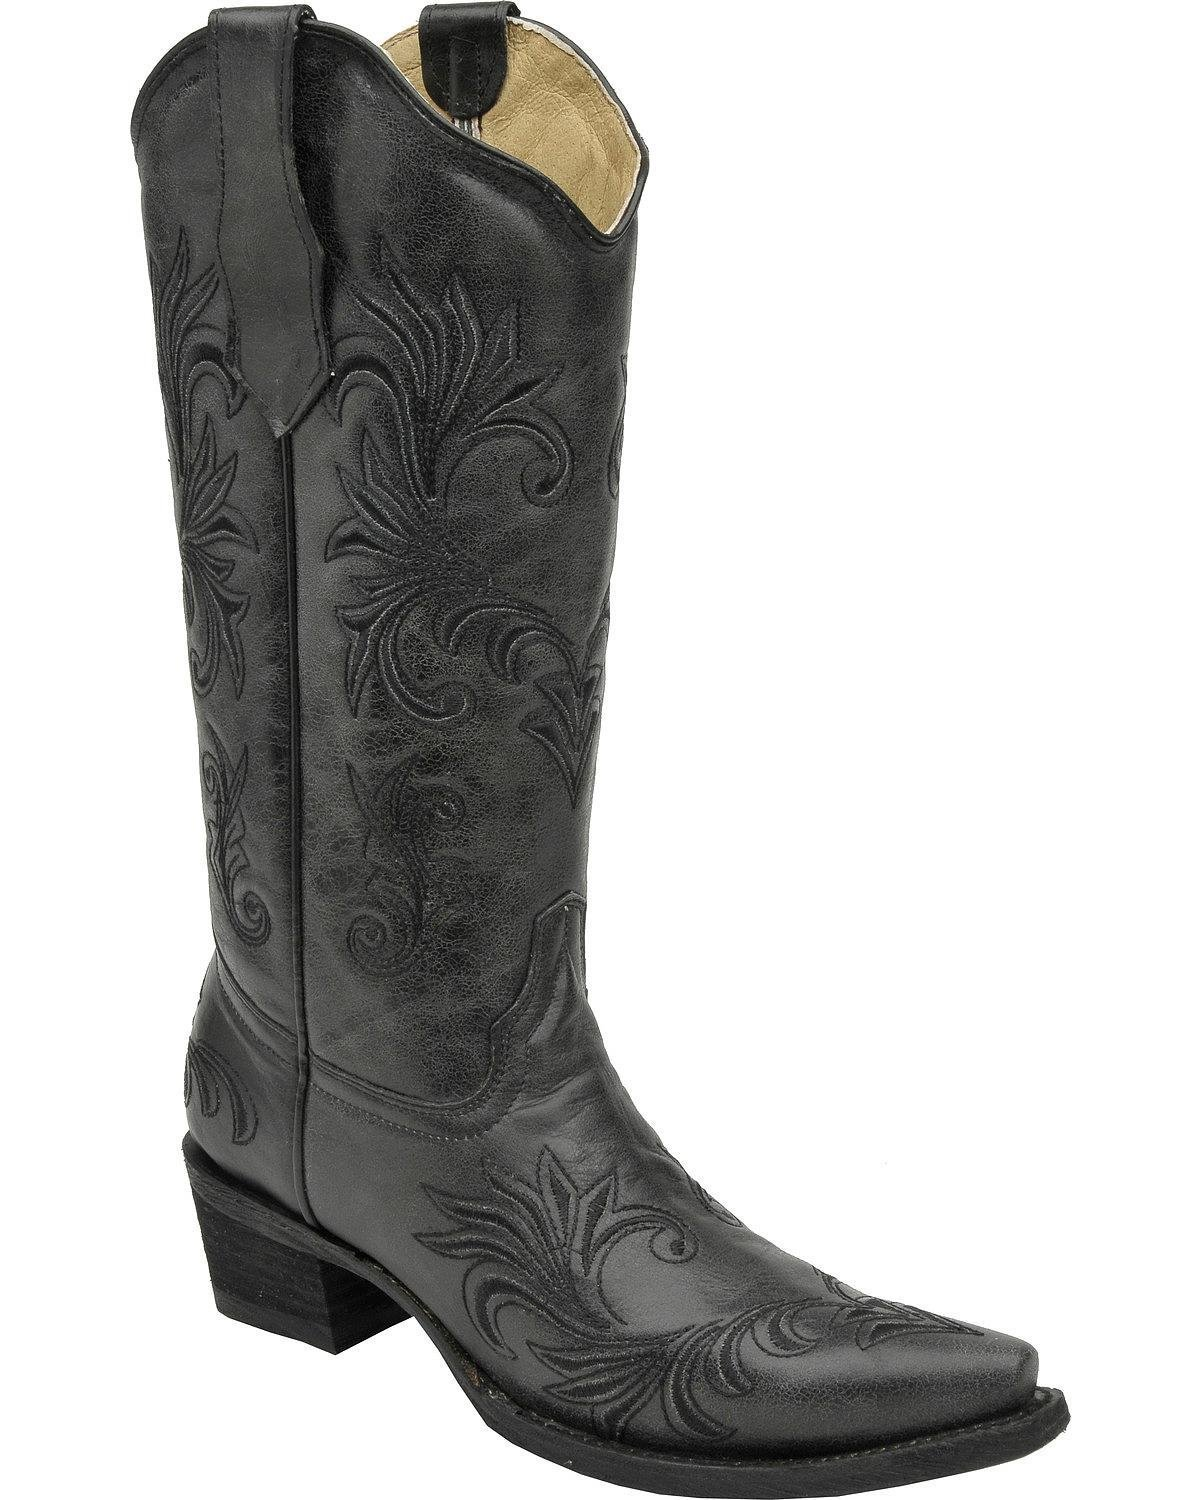 Circle G Women's Filigree Cowgirl Boot B01FQXYMUE Snip Toe - L5142 B01FQXYMUE Boot 8.5 B(M) US|Black 130ed6